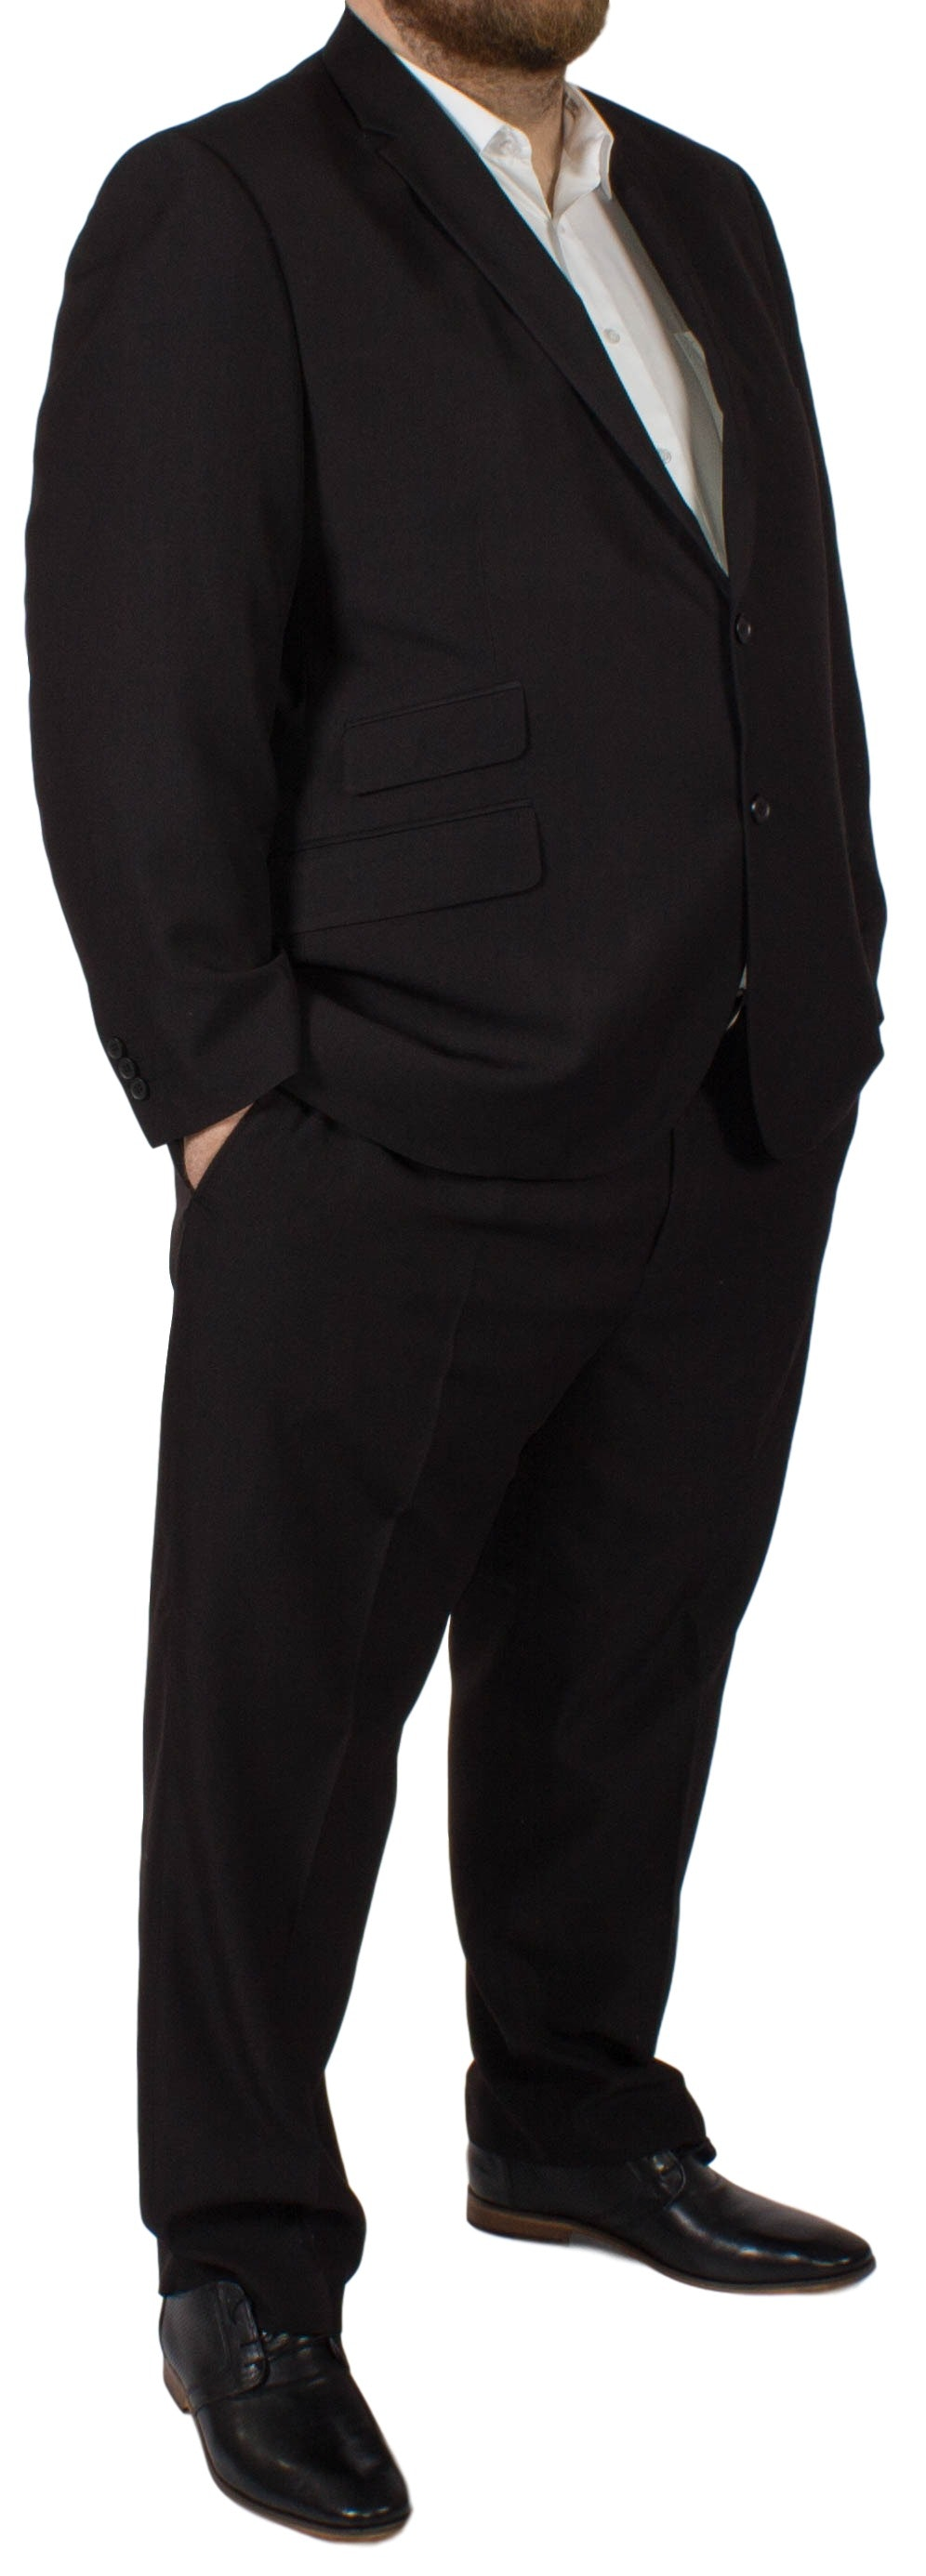 McCarthy Alberto Easy Fit Suit Black